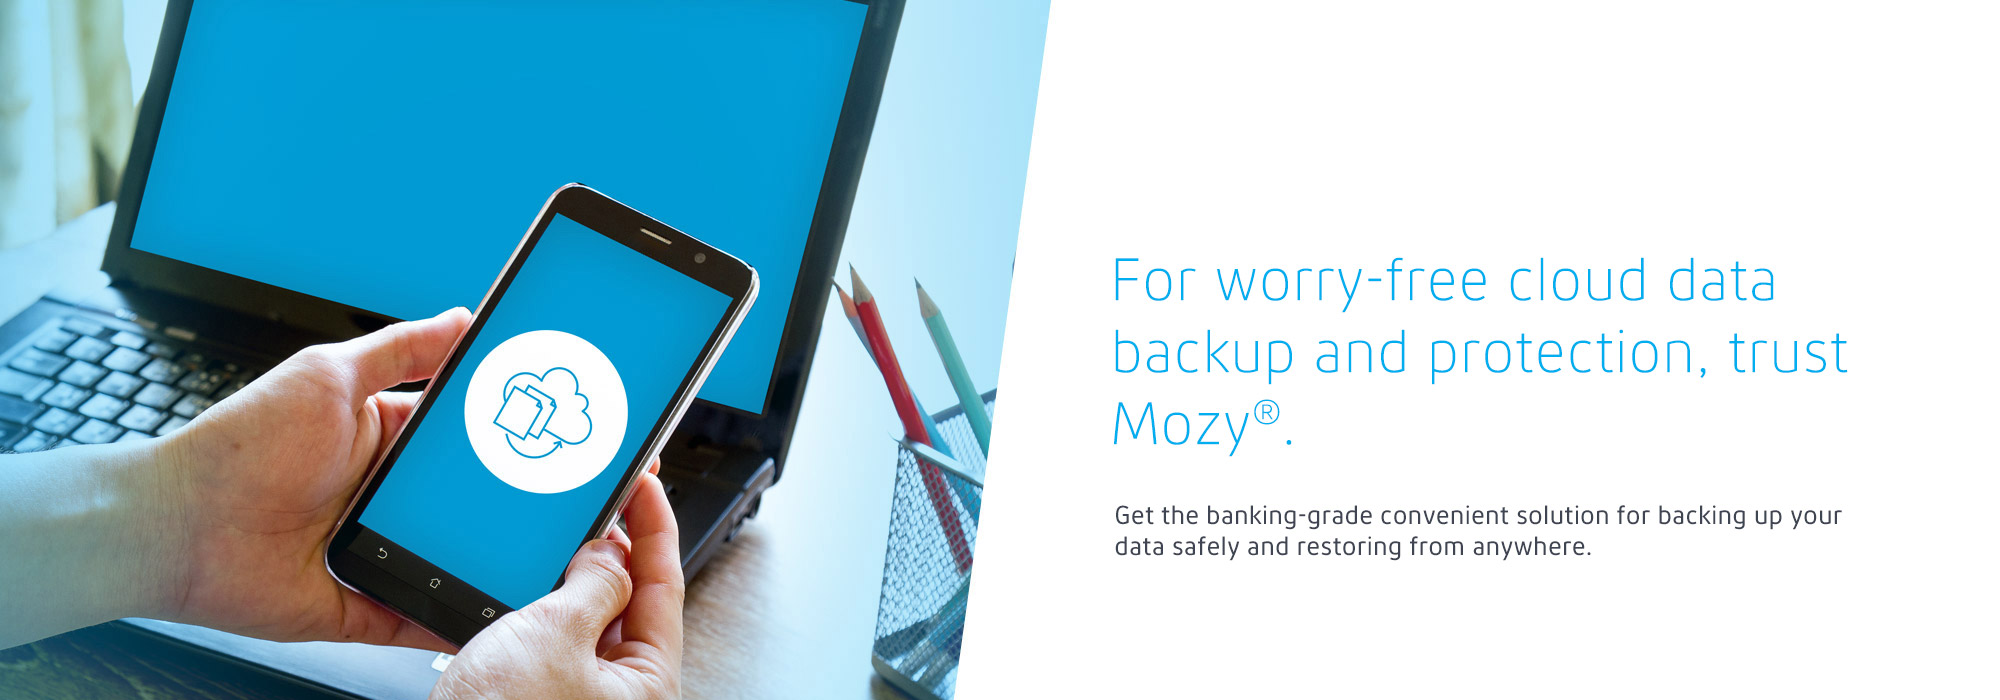 For worry-free cloud data backup and protection, trust Mozy